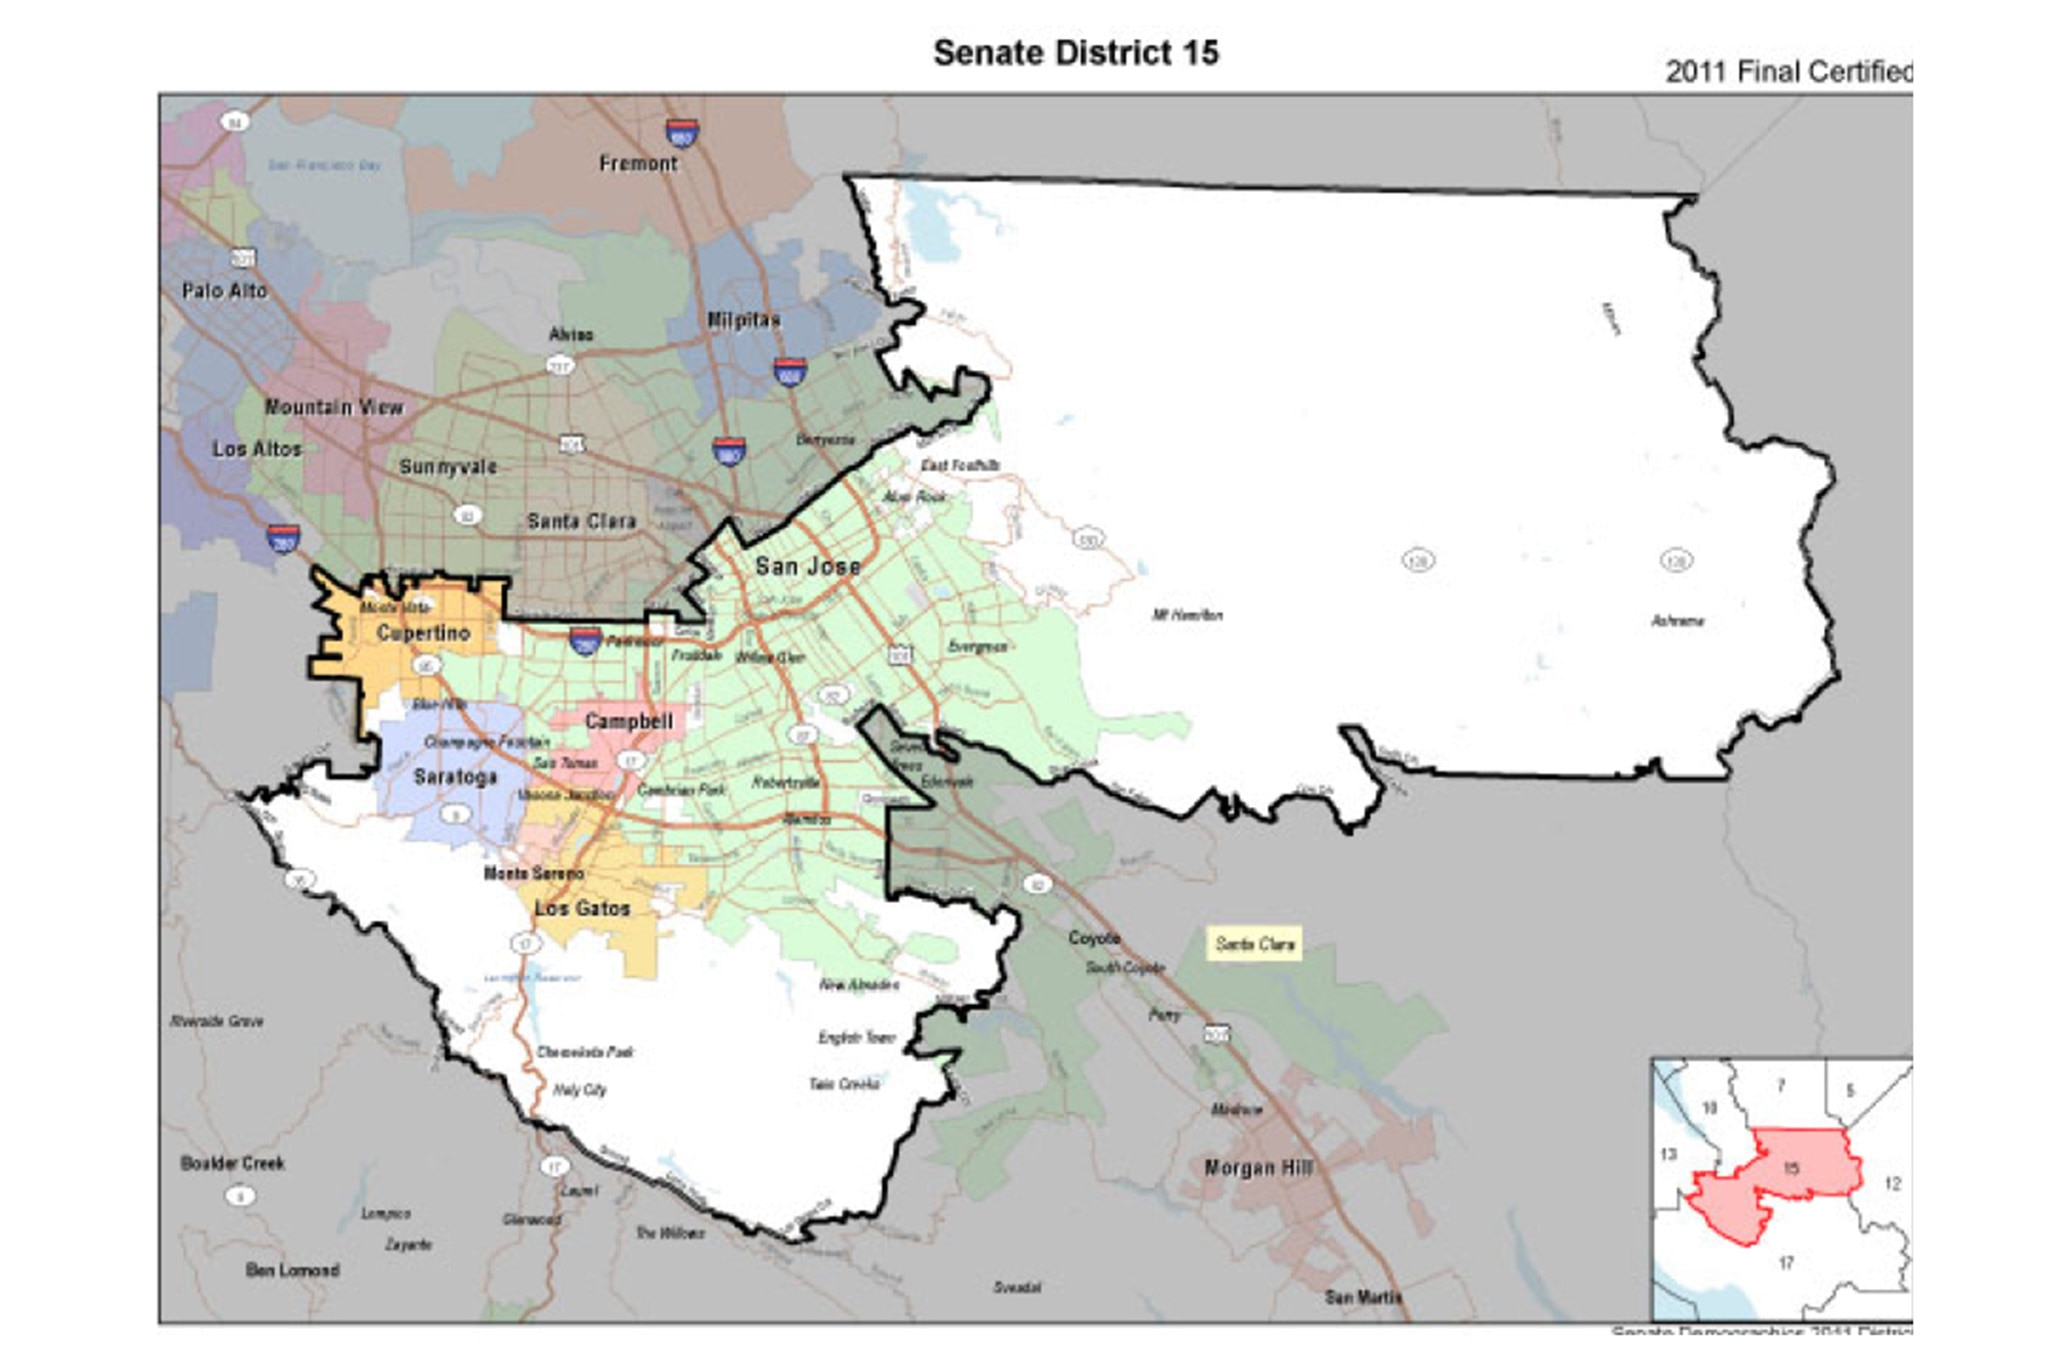 001 Beall 15 District